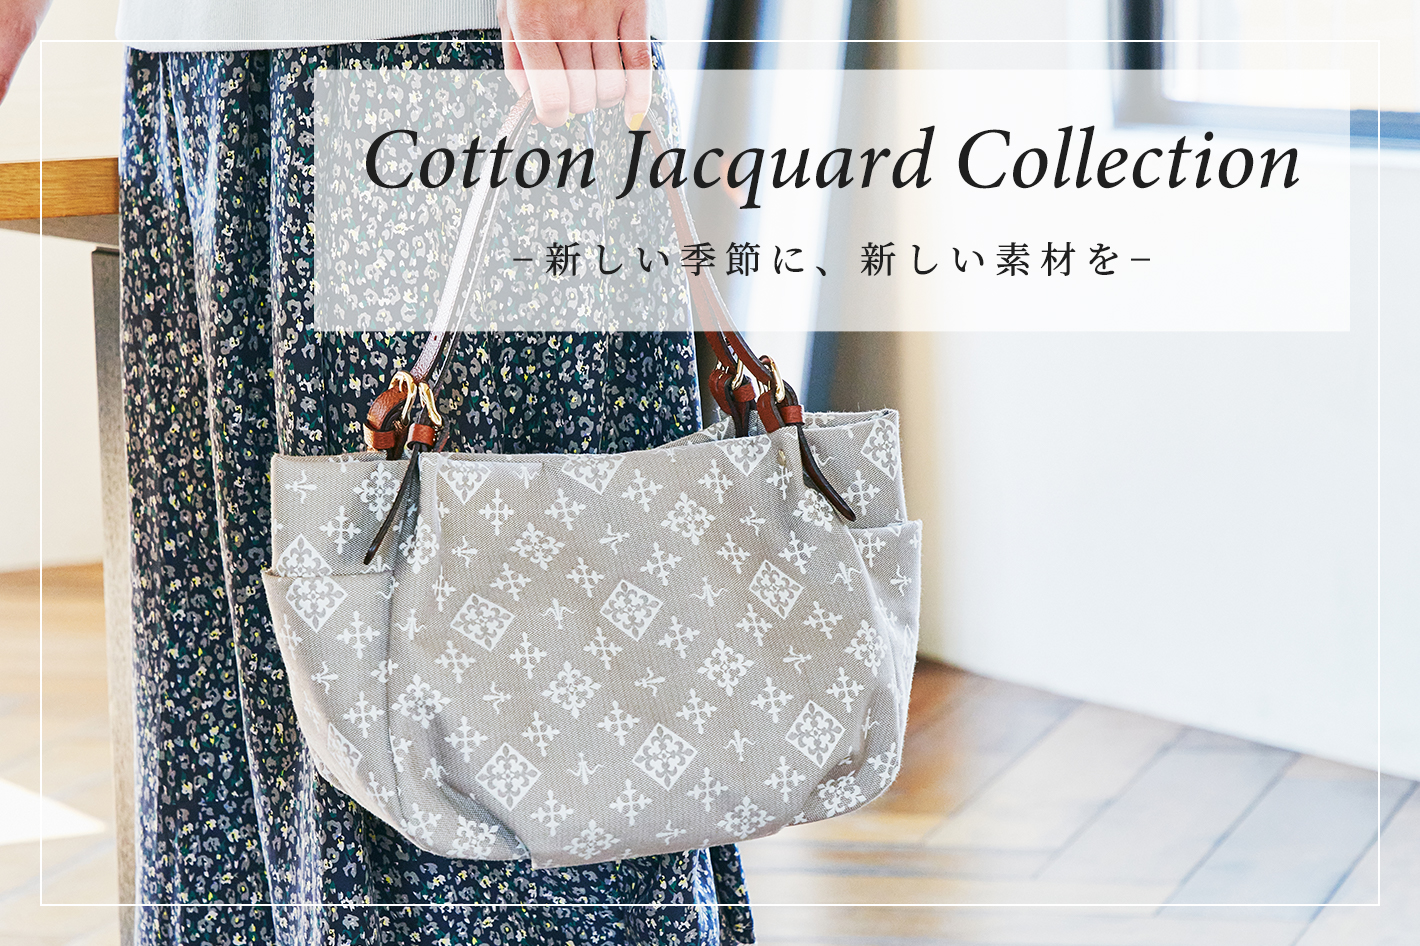 russet Cotton Jacquard Collection -新しい季節に、新しい素材を-